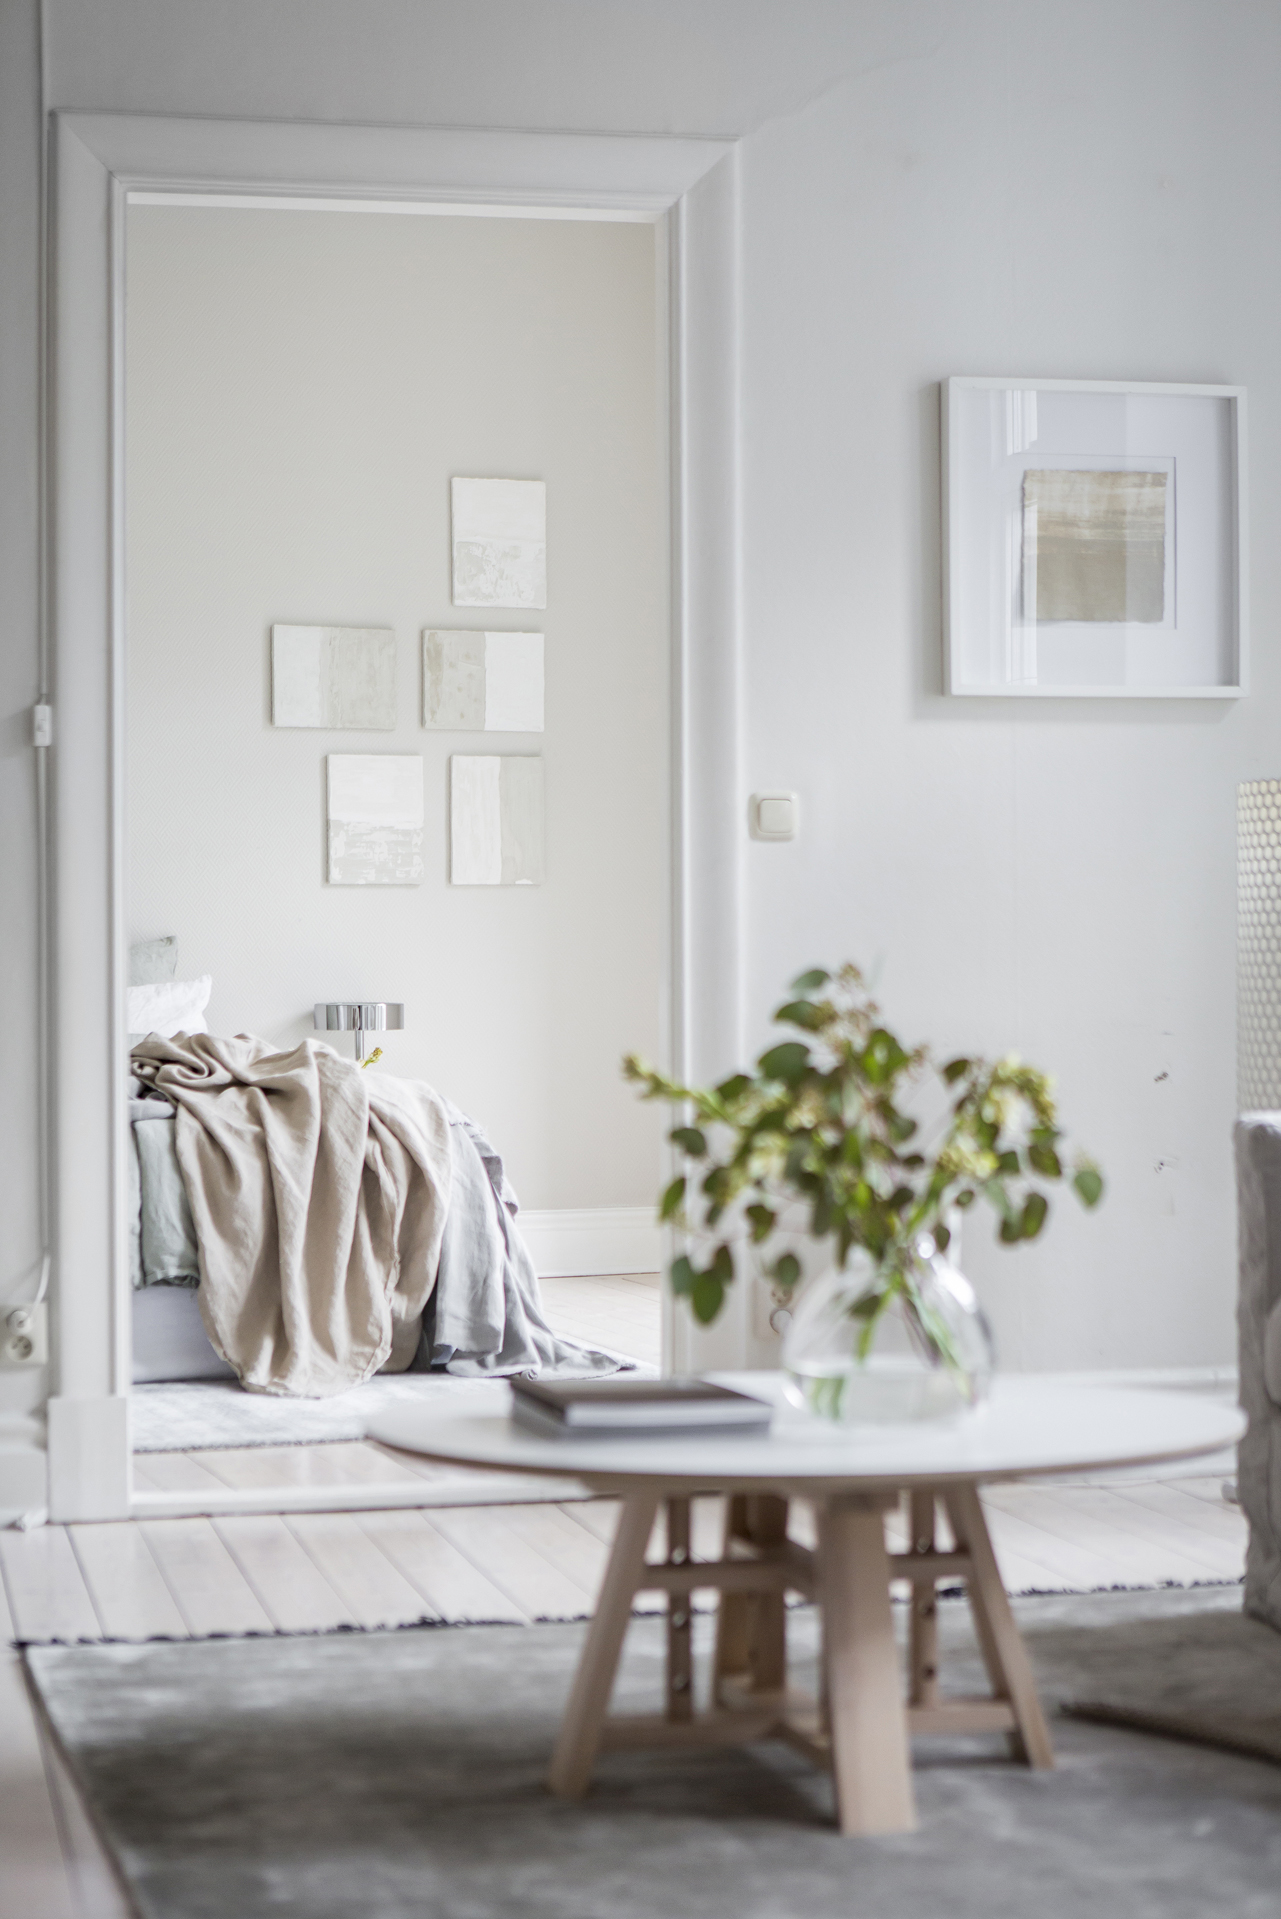 Beige bedroom in spring tints COCO LAPINE DESIGNCOCO LAPINE DESIGN